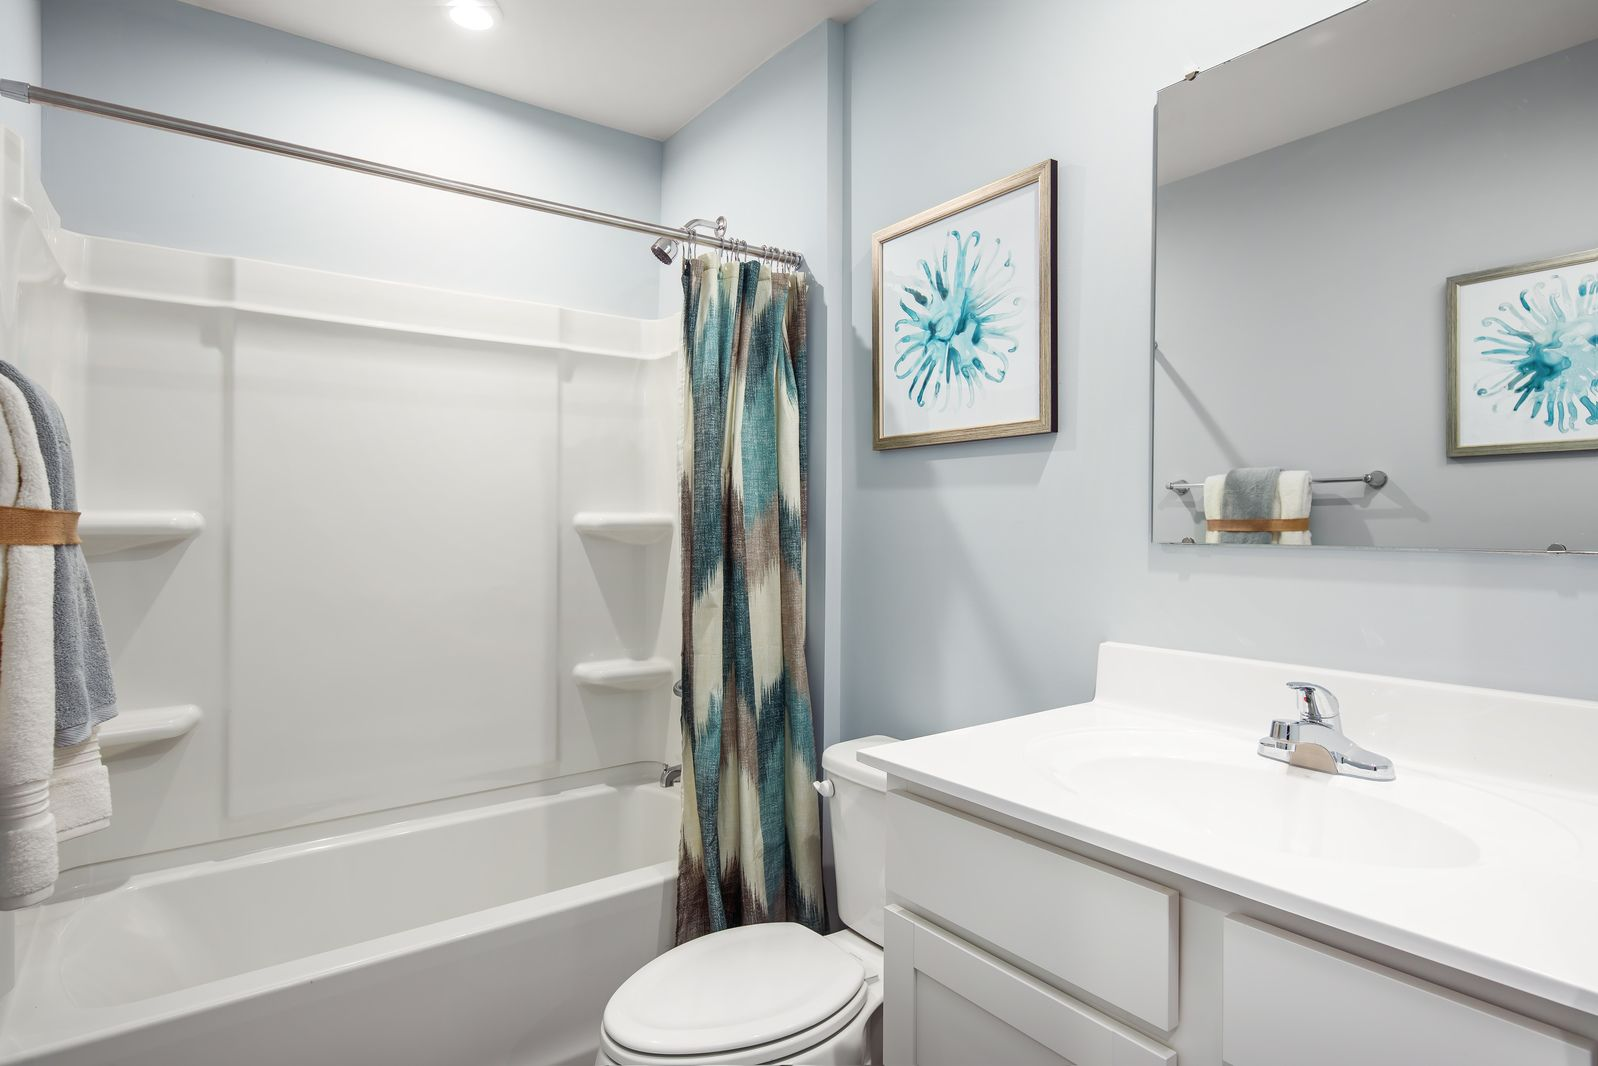 Bathroom featured in the Iris By Ryan Homes in Columbus, OH